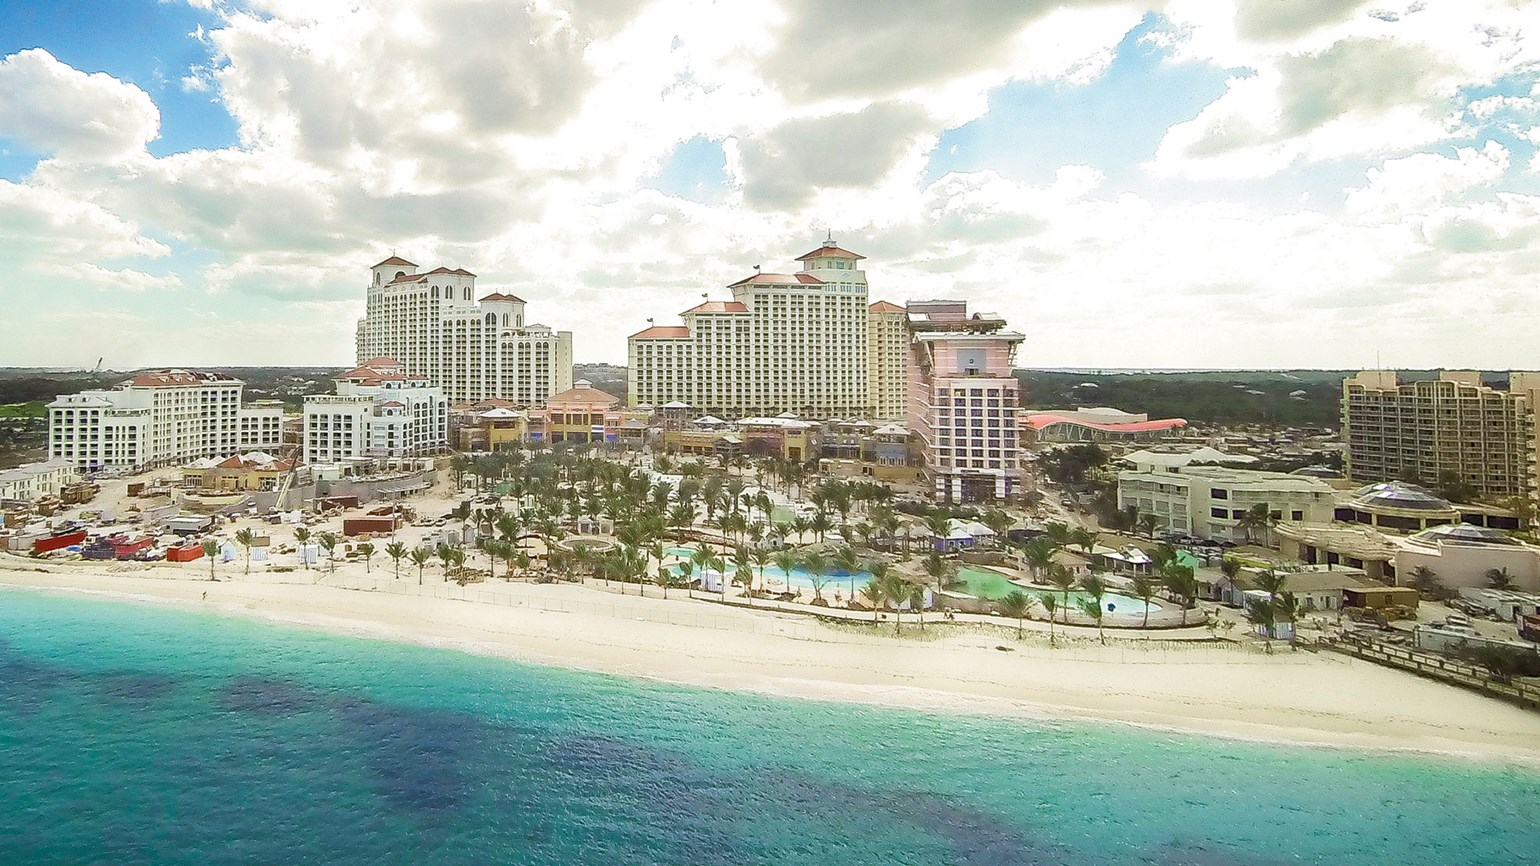 Baha Mar slated to open first phase by June, prime minister says